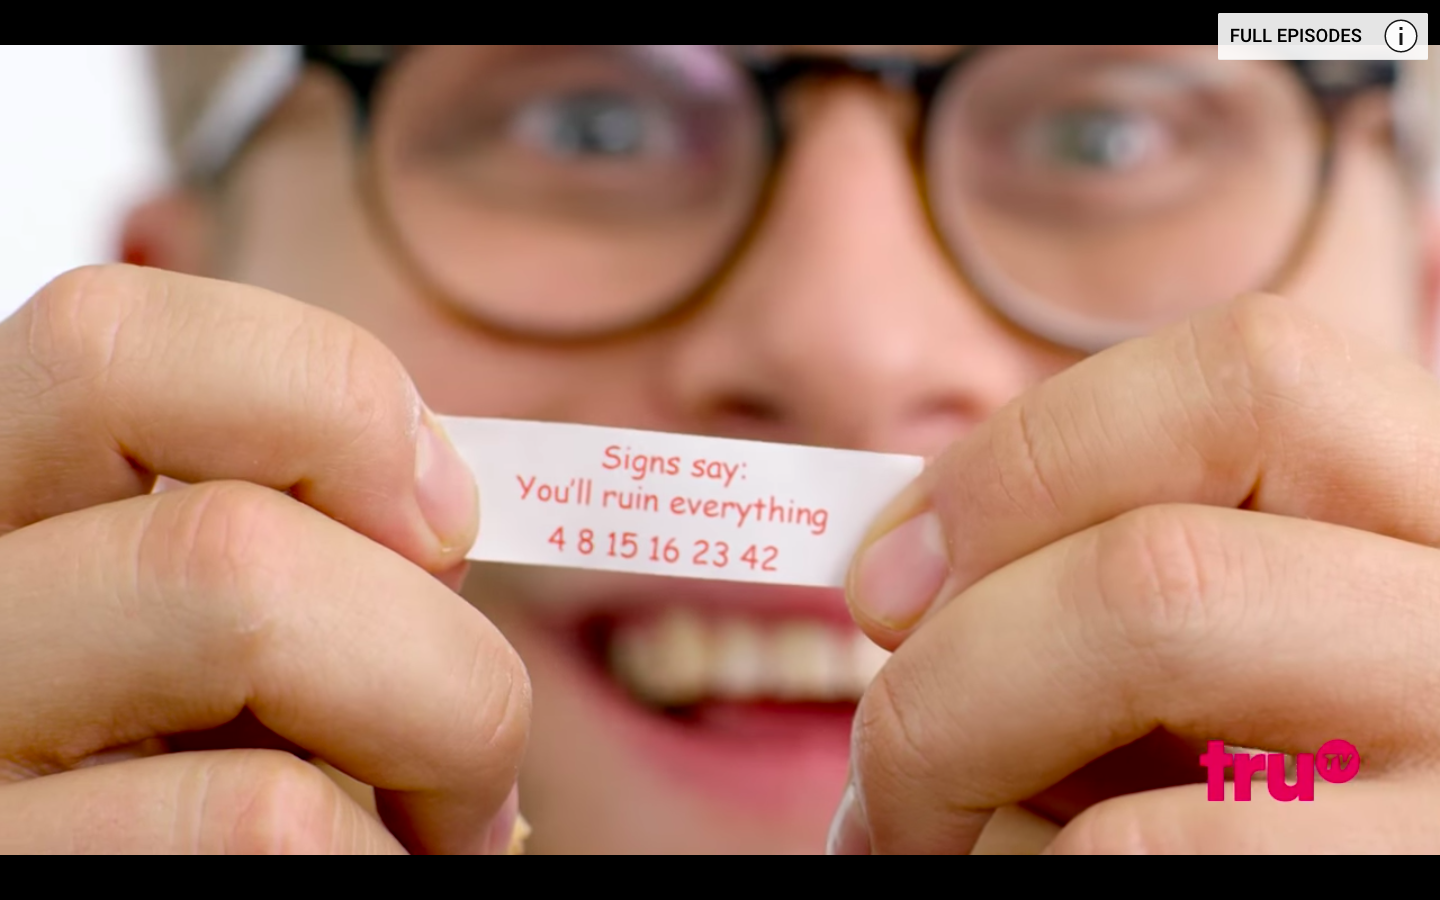 The numbers found on a fortune cookie in an Adam Ruins Everything 1440x900